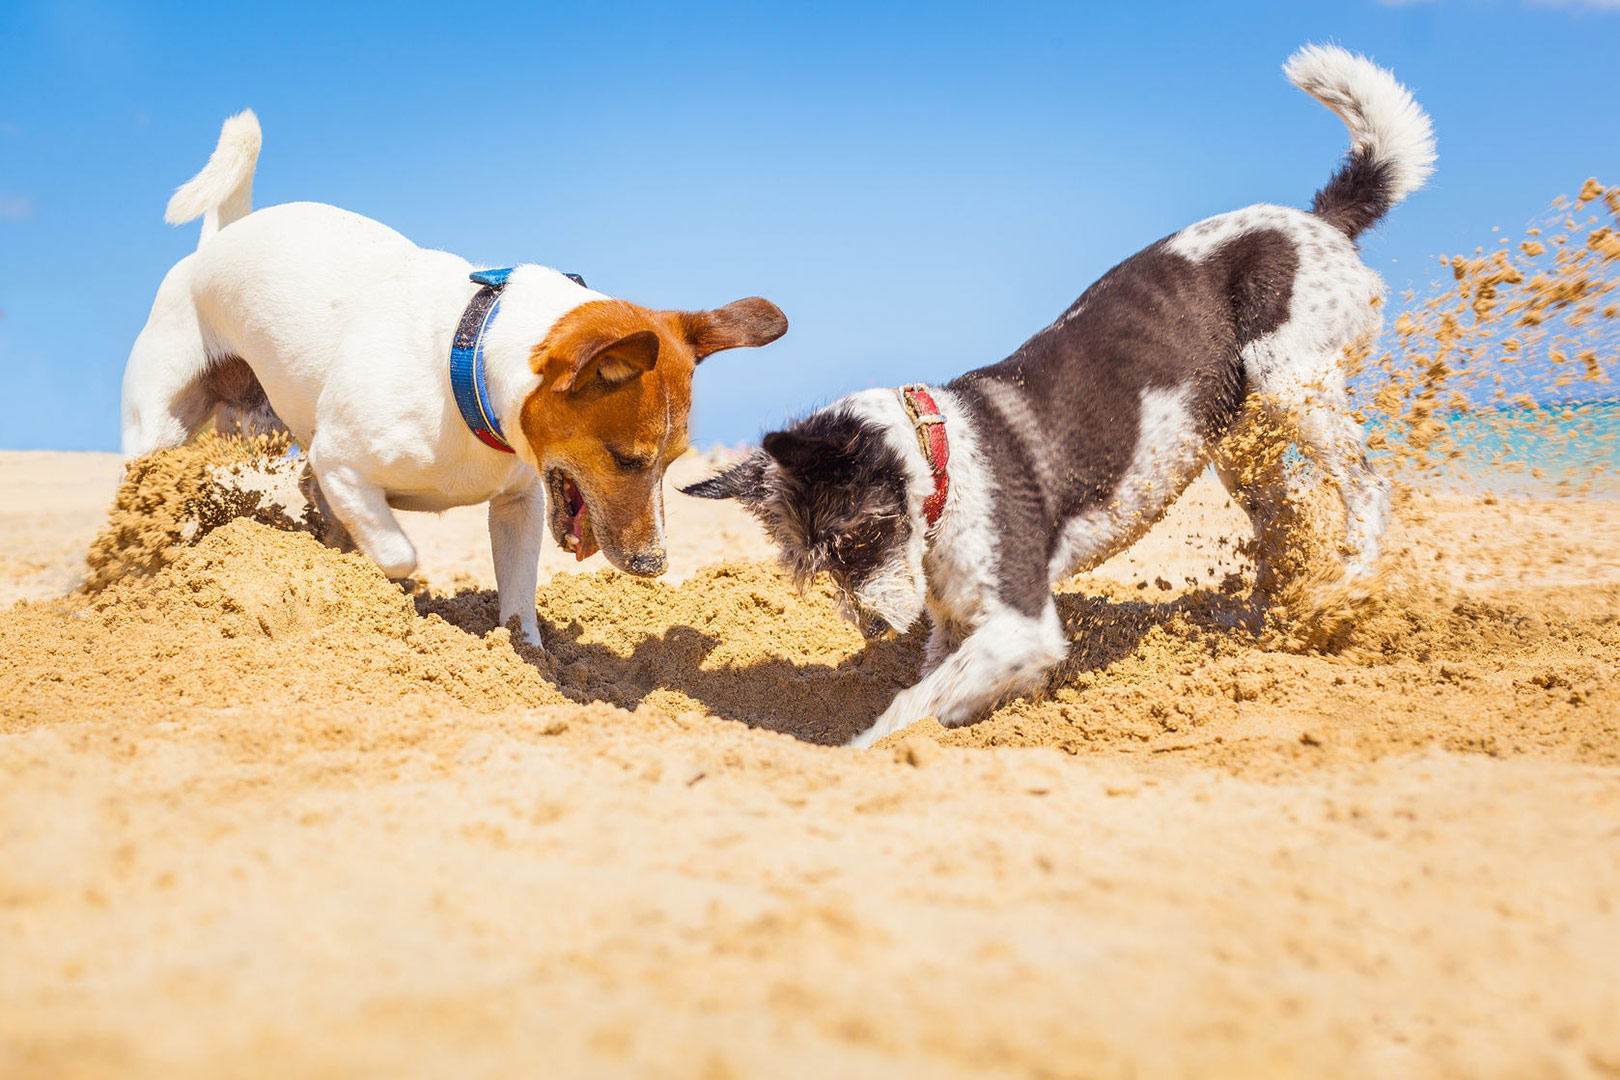 Me-My-Pets-blog-dog-friendly-easter-treats-picture-of-two-dogs-digging-in-the-sand